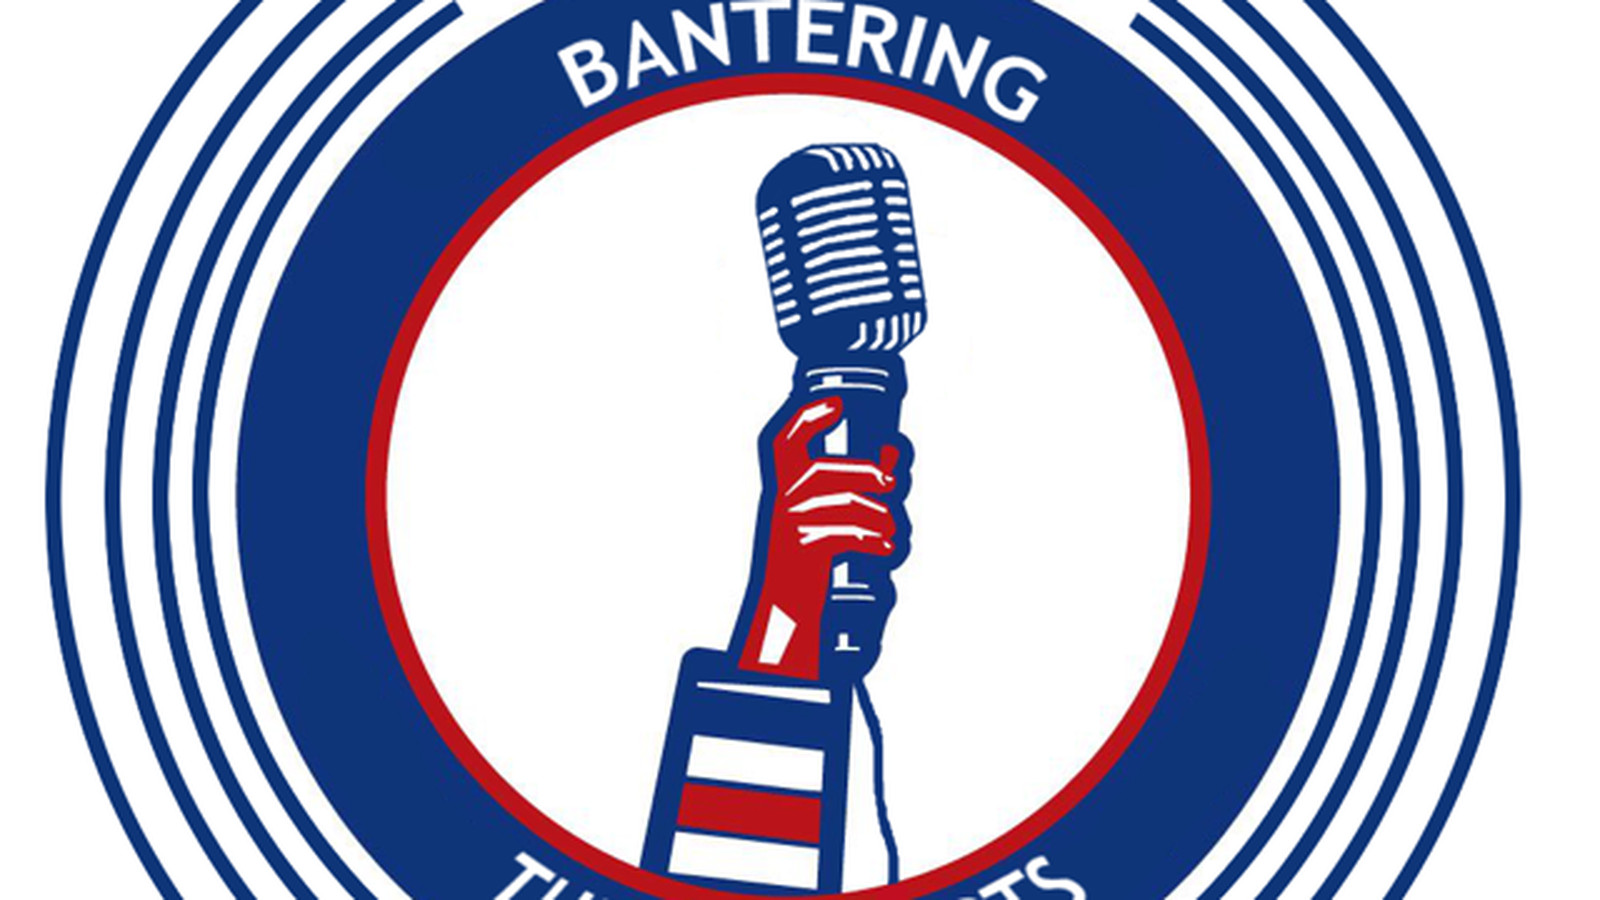 Banter_podcast_logo_no_sticks.0